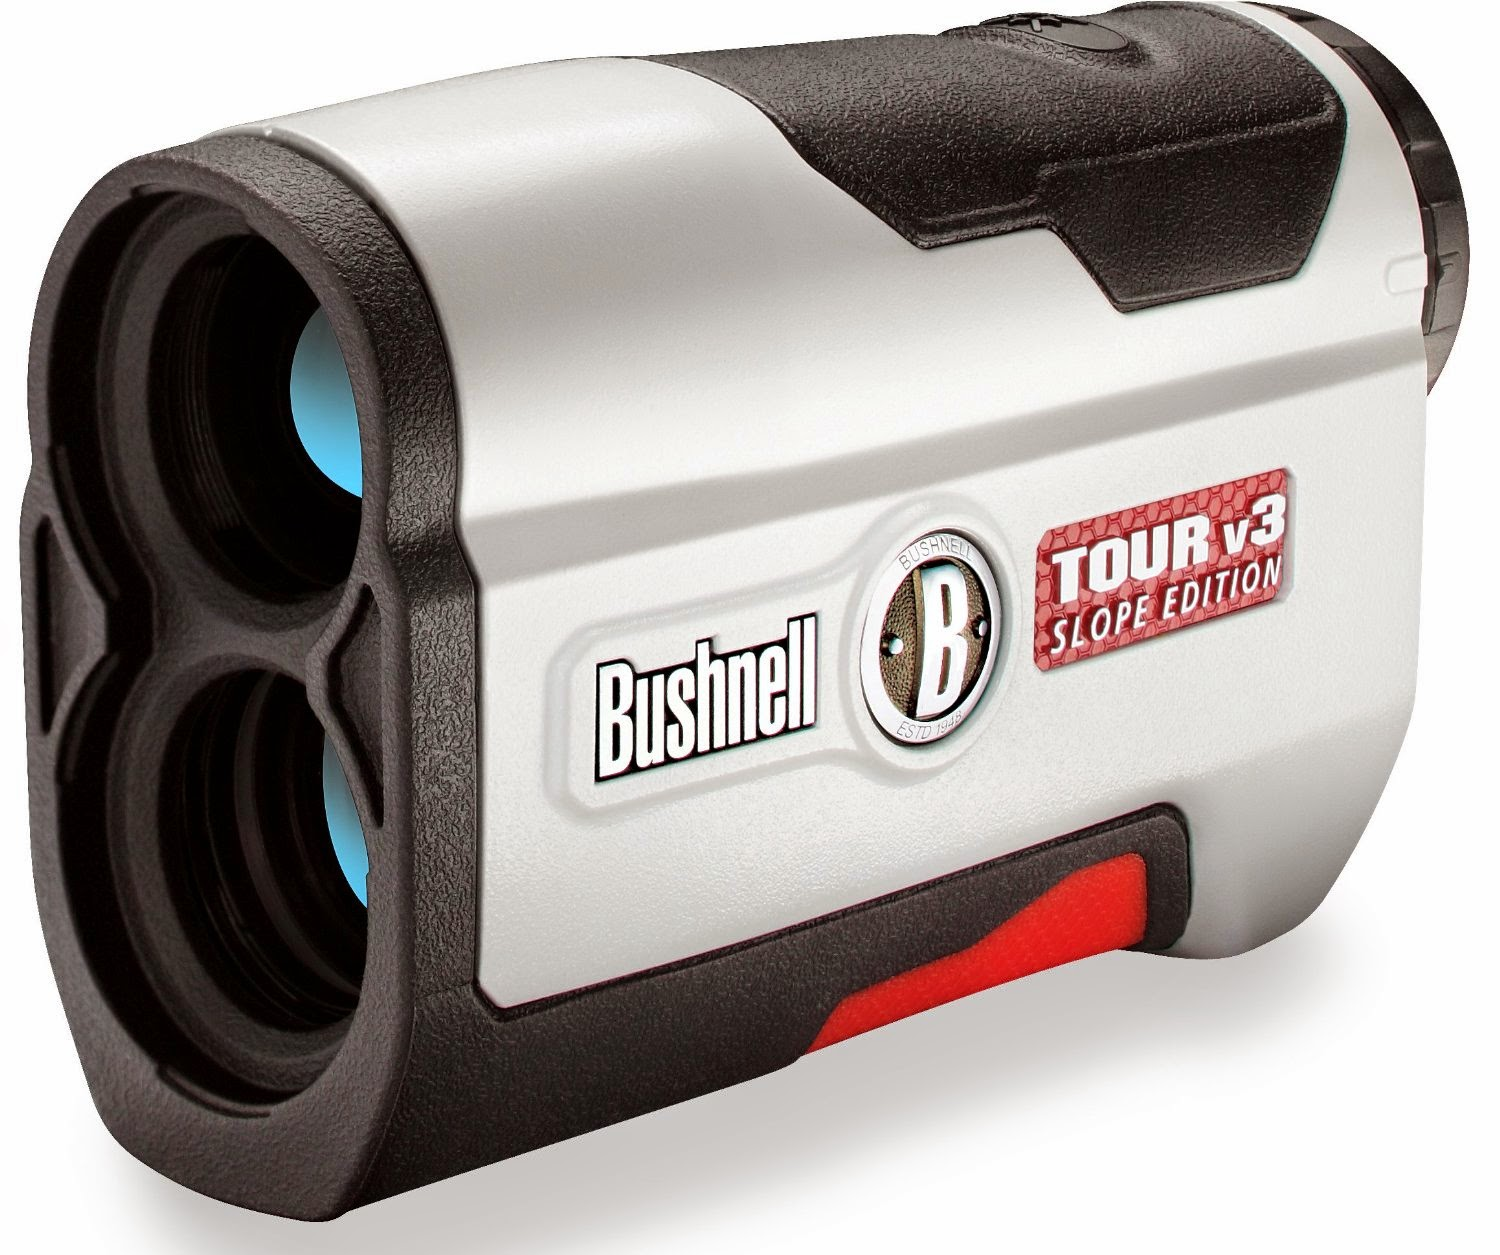 Bushnell Tour V3 Slope Laser Rangefinder with Pin Seeker & Jolt Technology, review, 5x magnification, 24mm objective, performance range of up to 1,000 yards and 300 yards to flag with +/- 1 yard accuracy